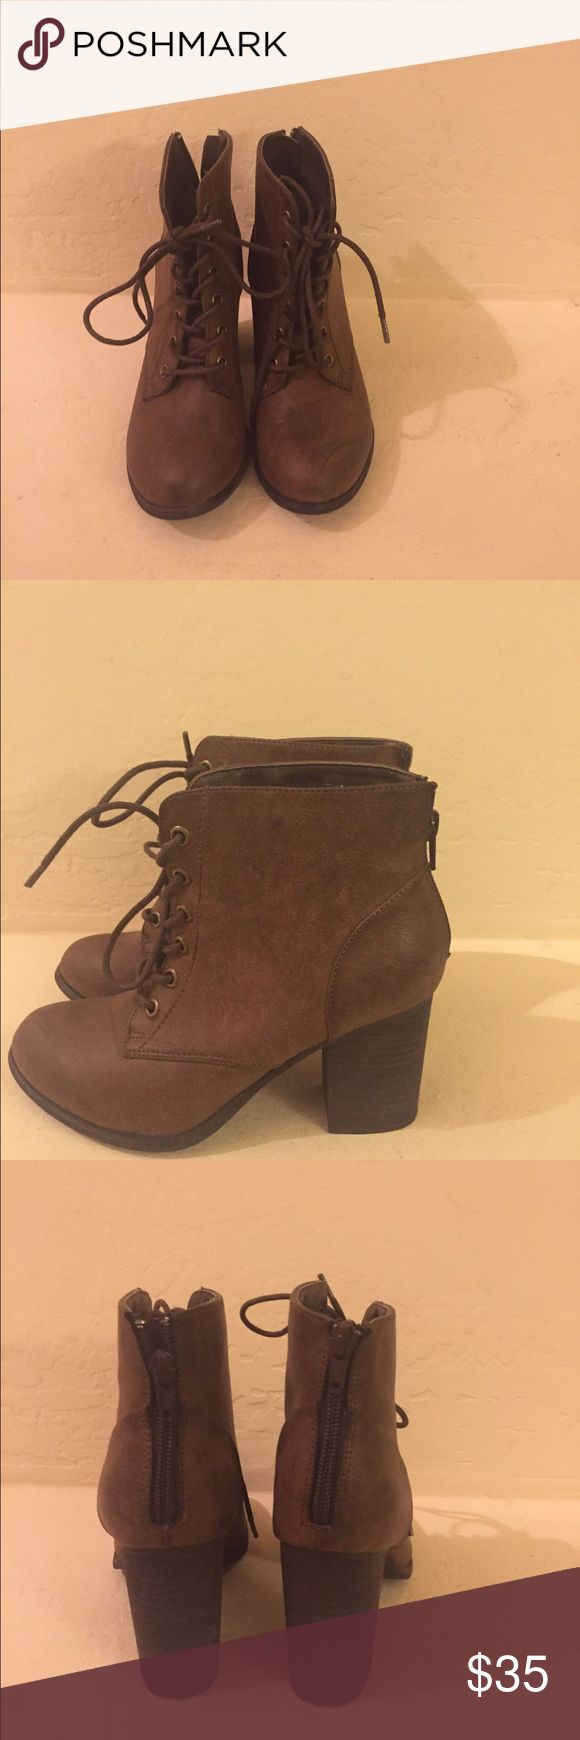 Diba  booties Brown leather ankle boots Diba Shoes Ankle Boots & Booties